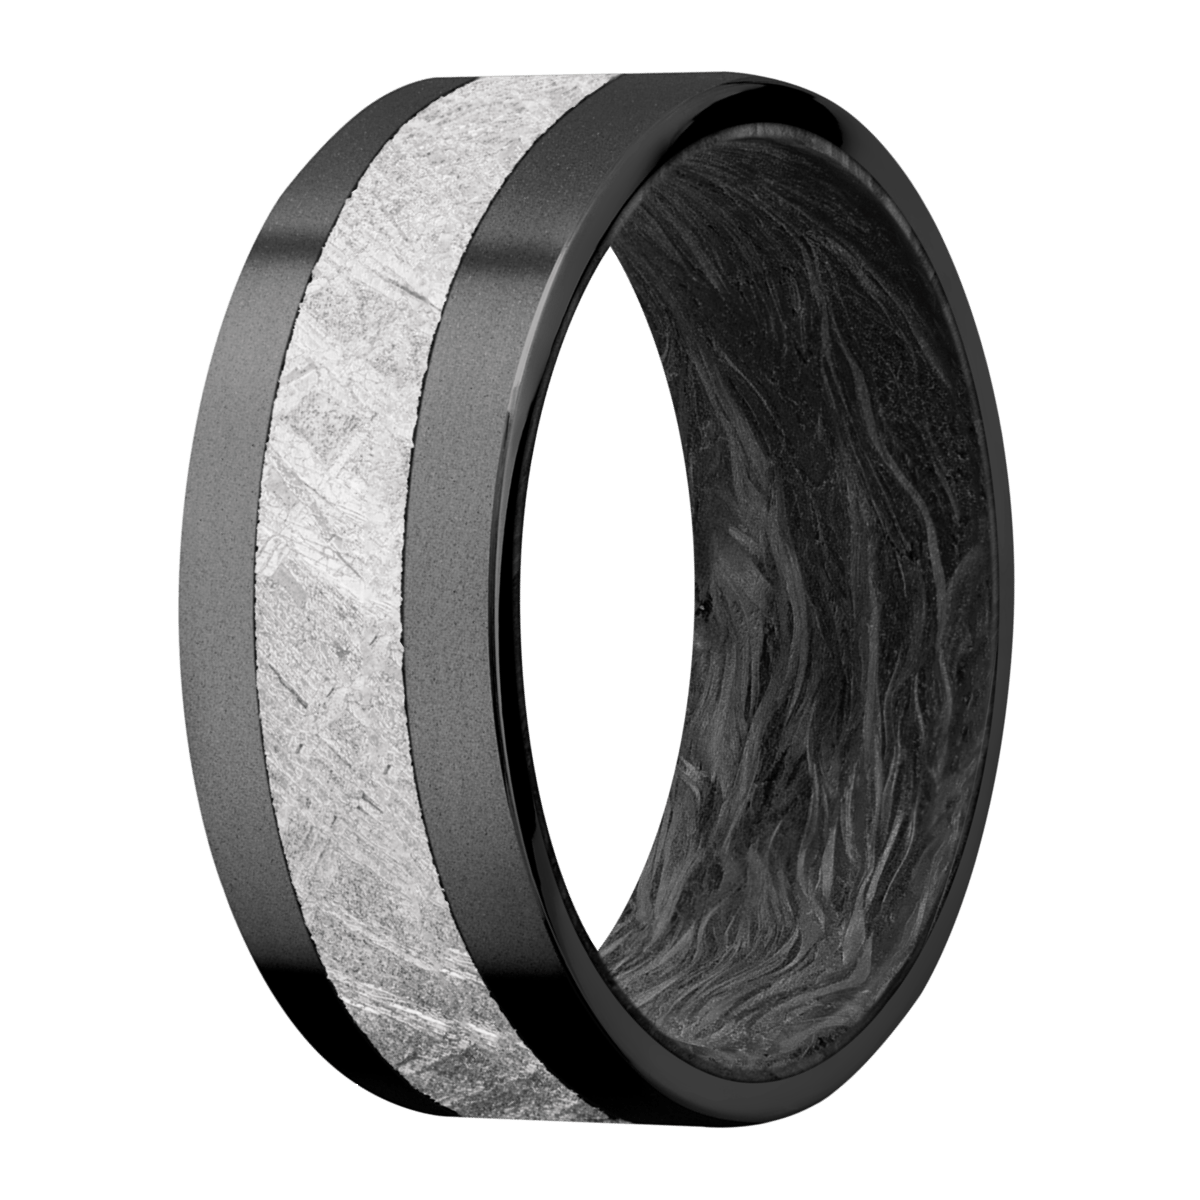 Men's Black Zirconium Meteorite Ring with Forged Carbon Fiber Sleeve